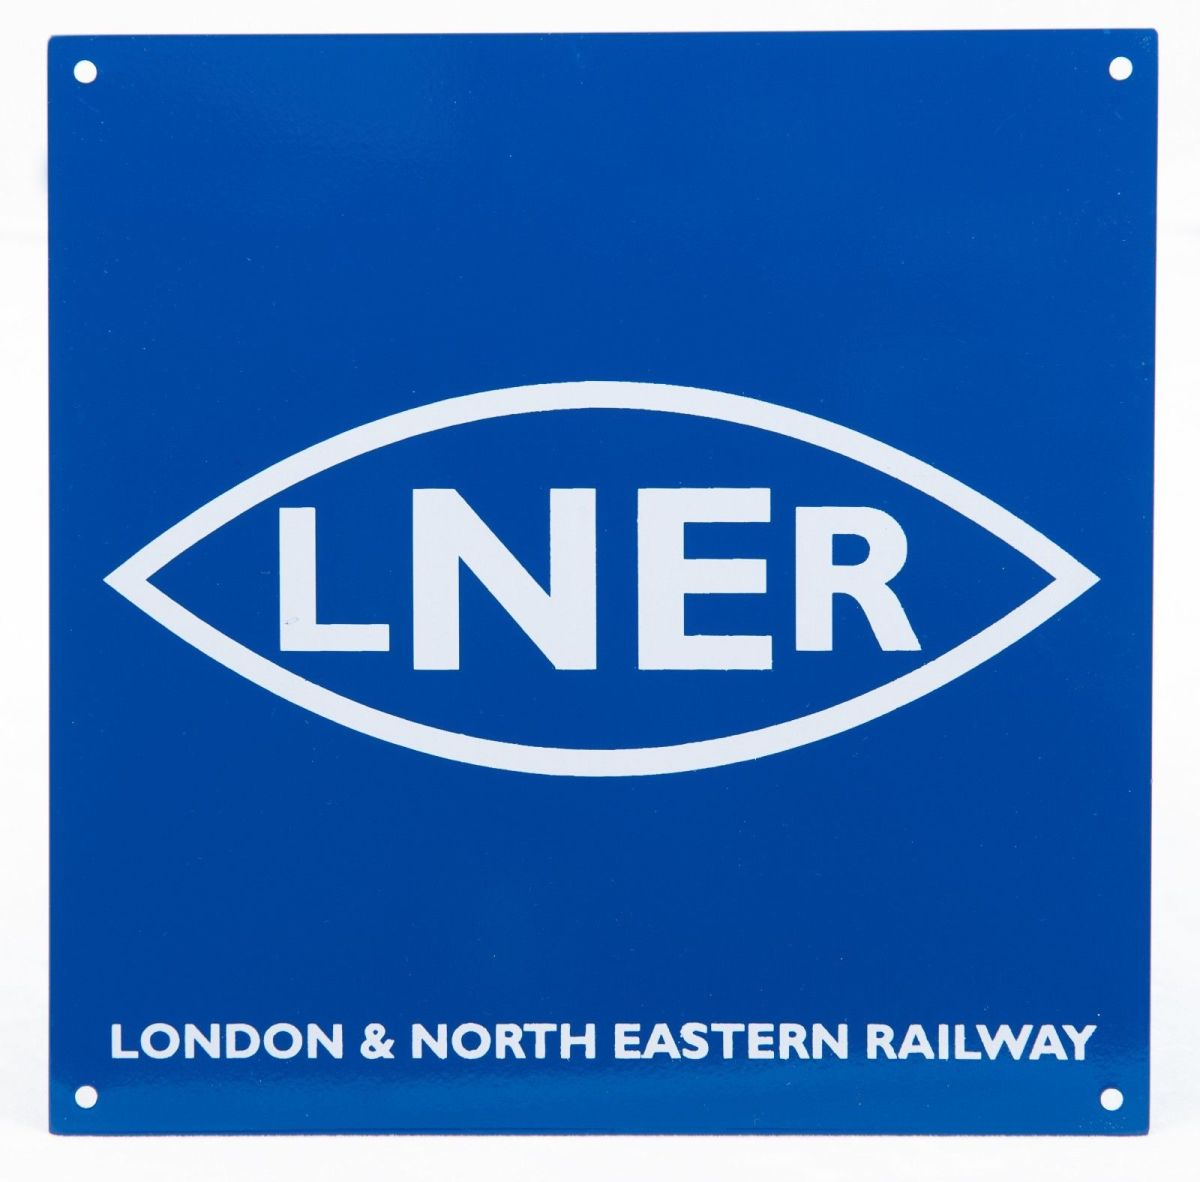 'The London & Nearly Everywhere Railway', the LNER's tentacles stretched into rival territory. Its aim primarily was to further the interests of the Board, secondarily to serve industry and commerce as well as a third of mainland Britain's commuters